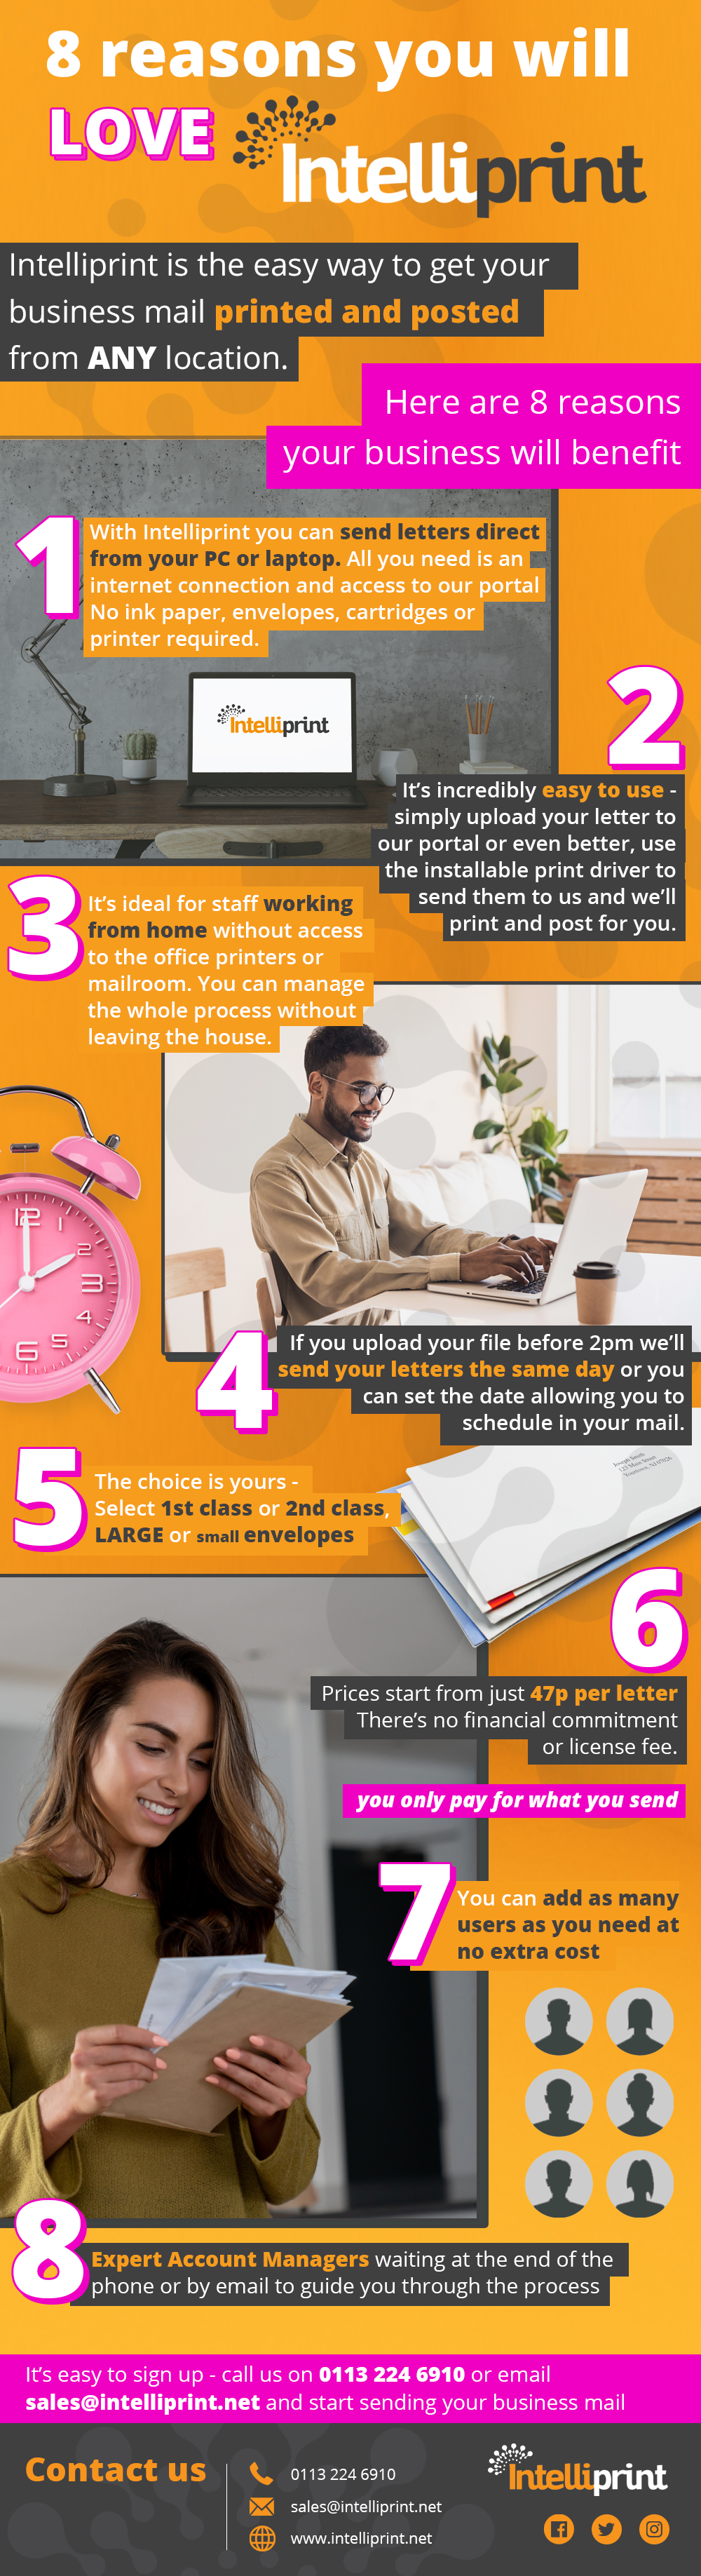 8 reasons to print and post your mail online